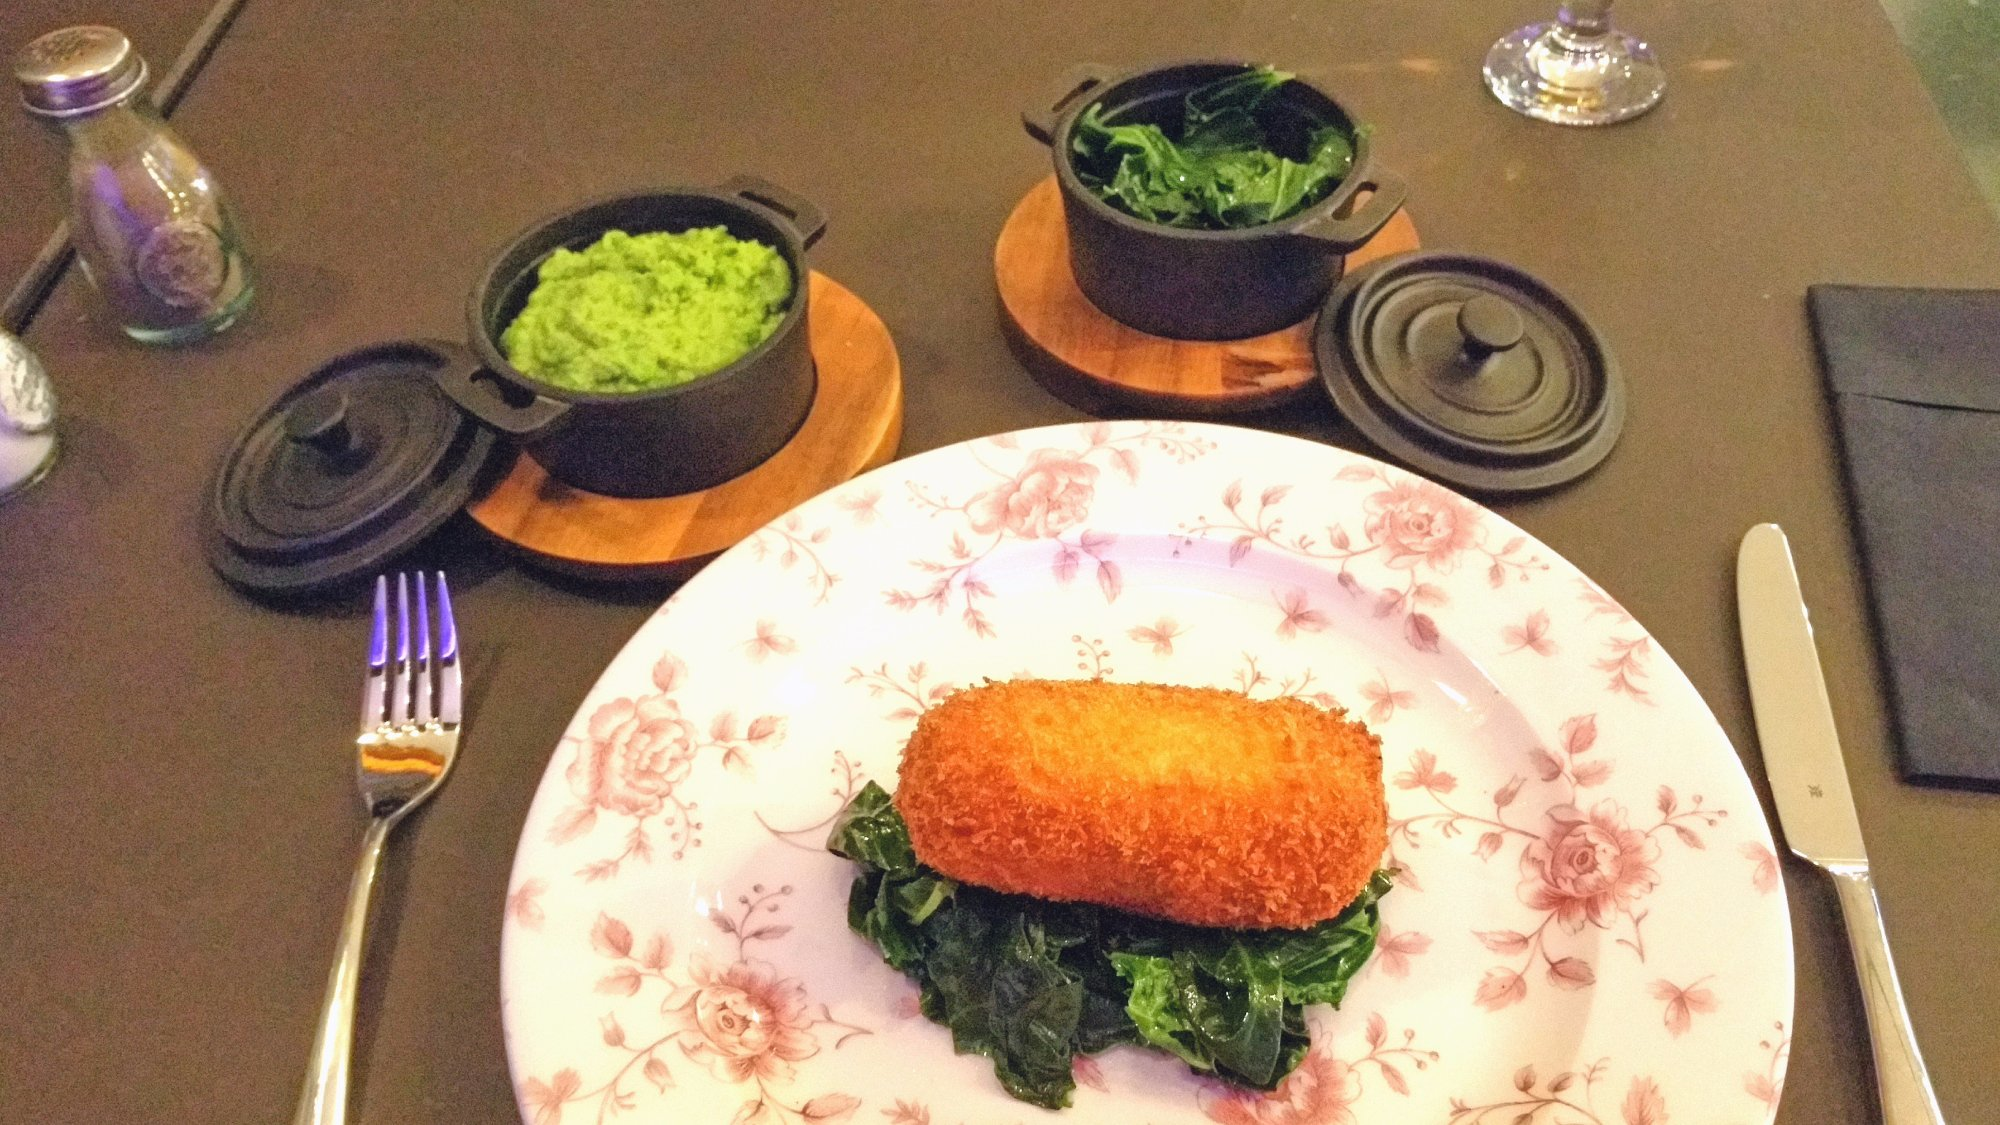 Chicken kiev with mushy peas and buttered greens sides